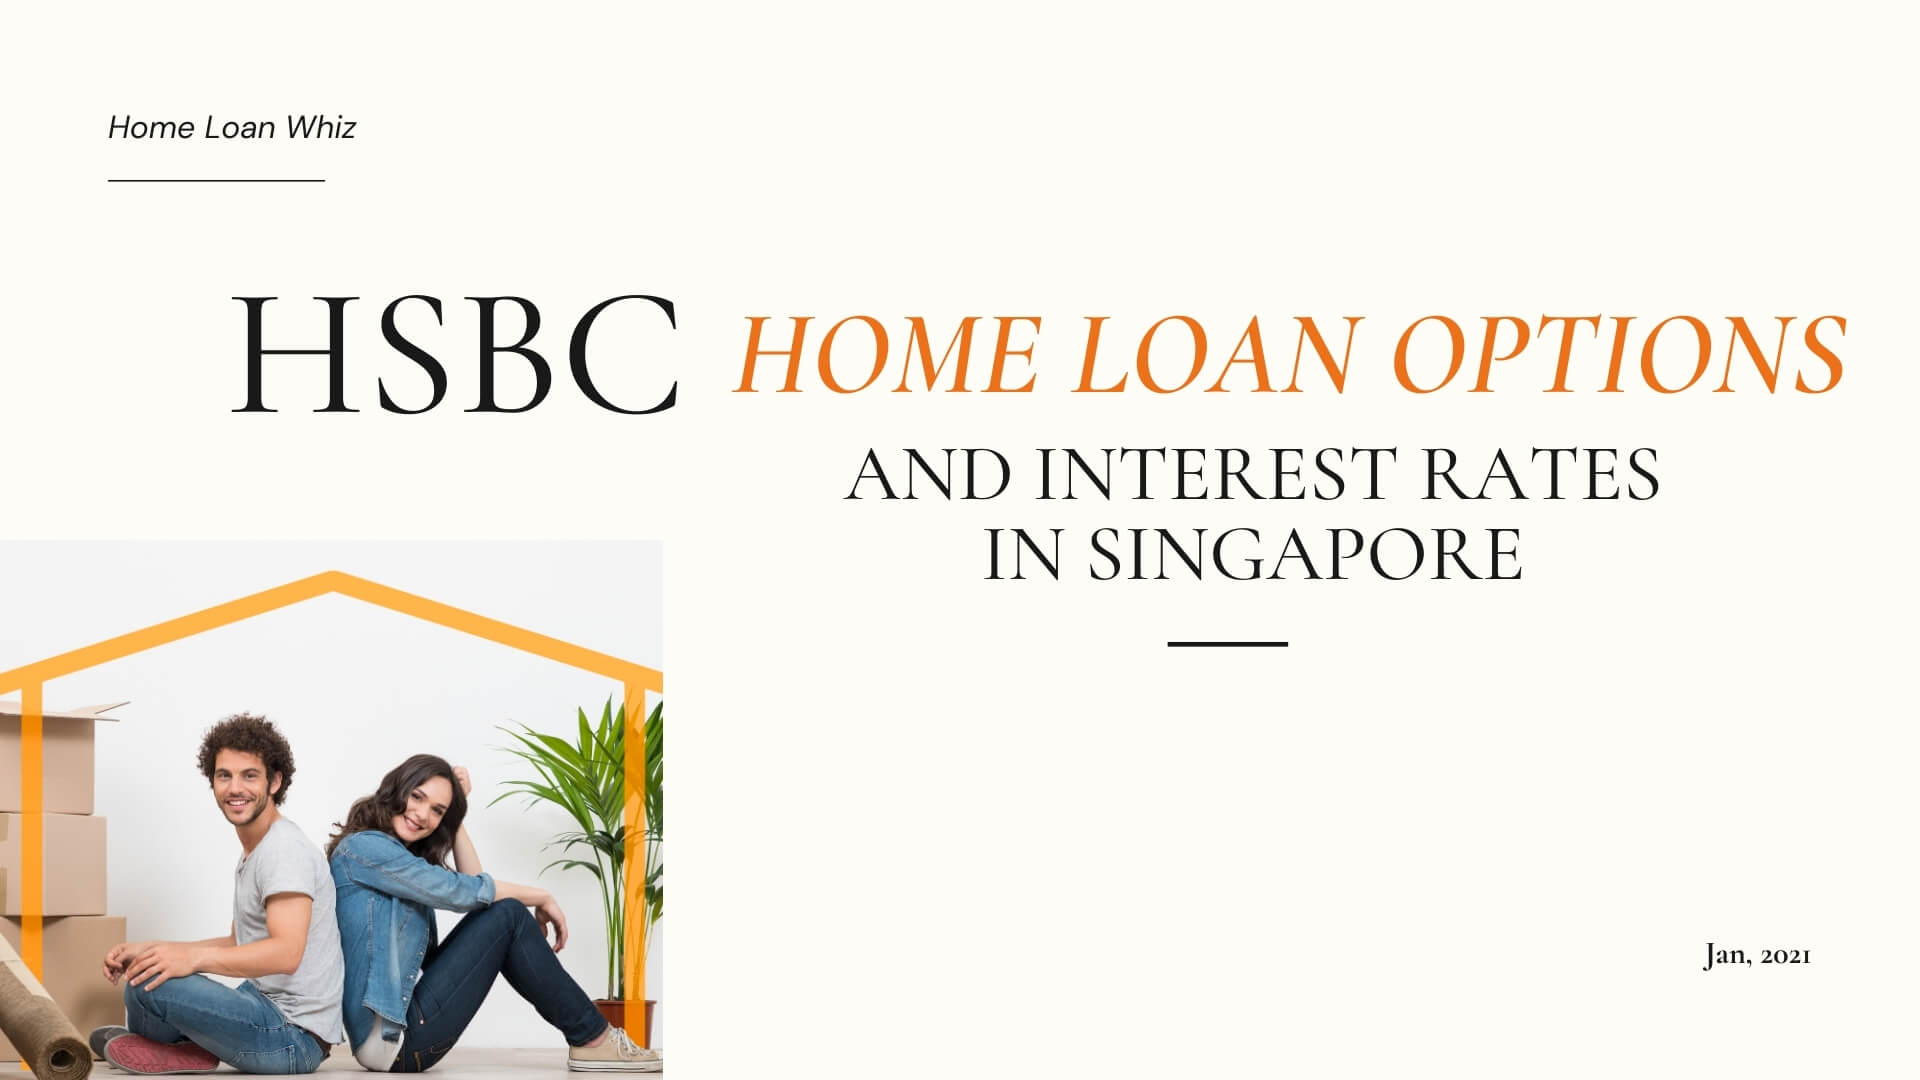 HSBC Home Loan Options and Interest Rates in Singapore